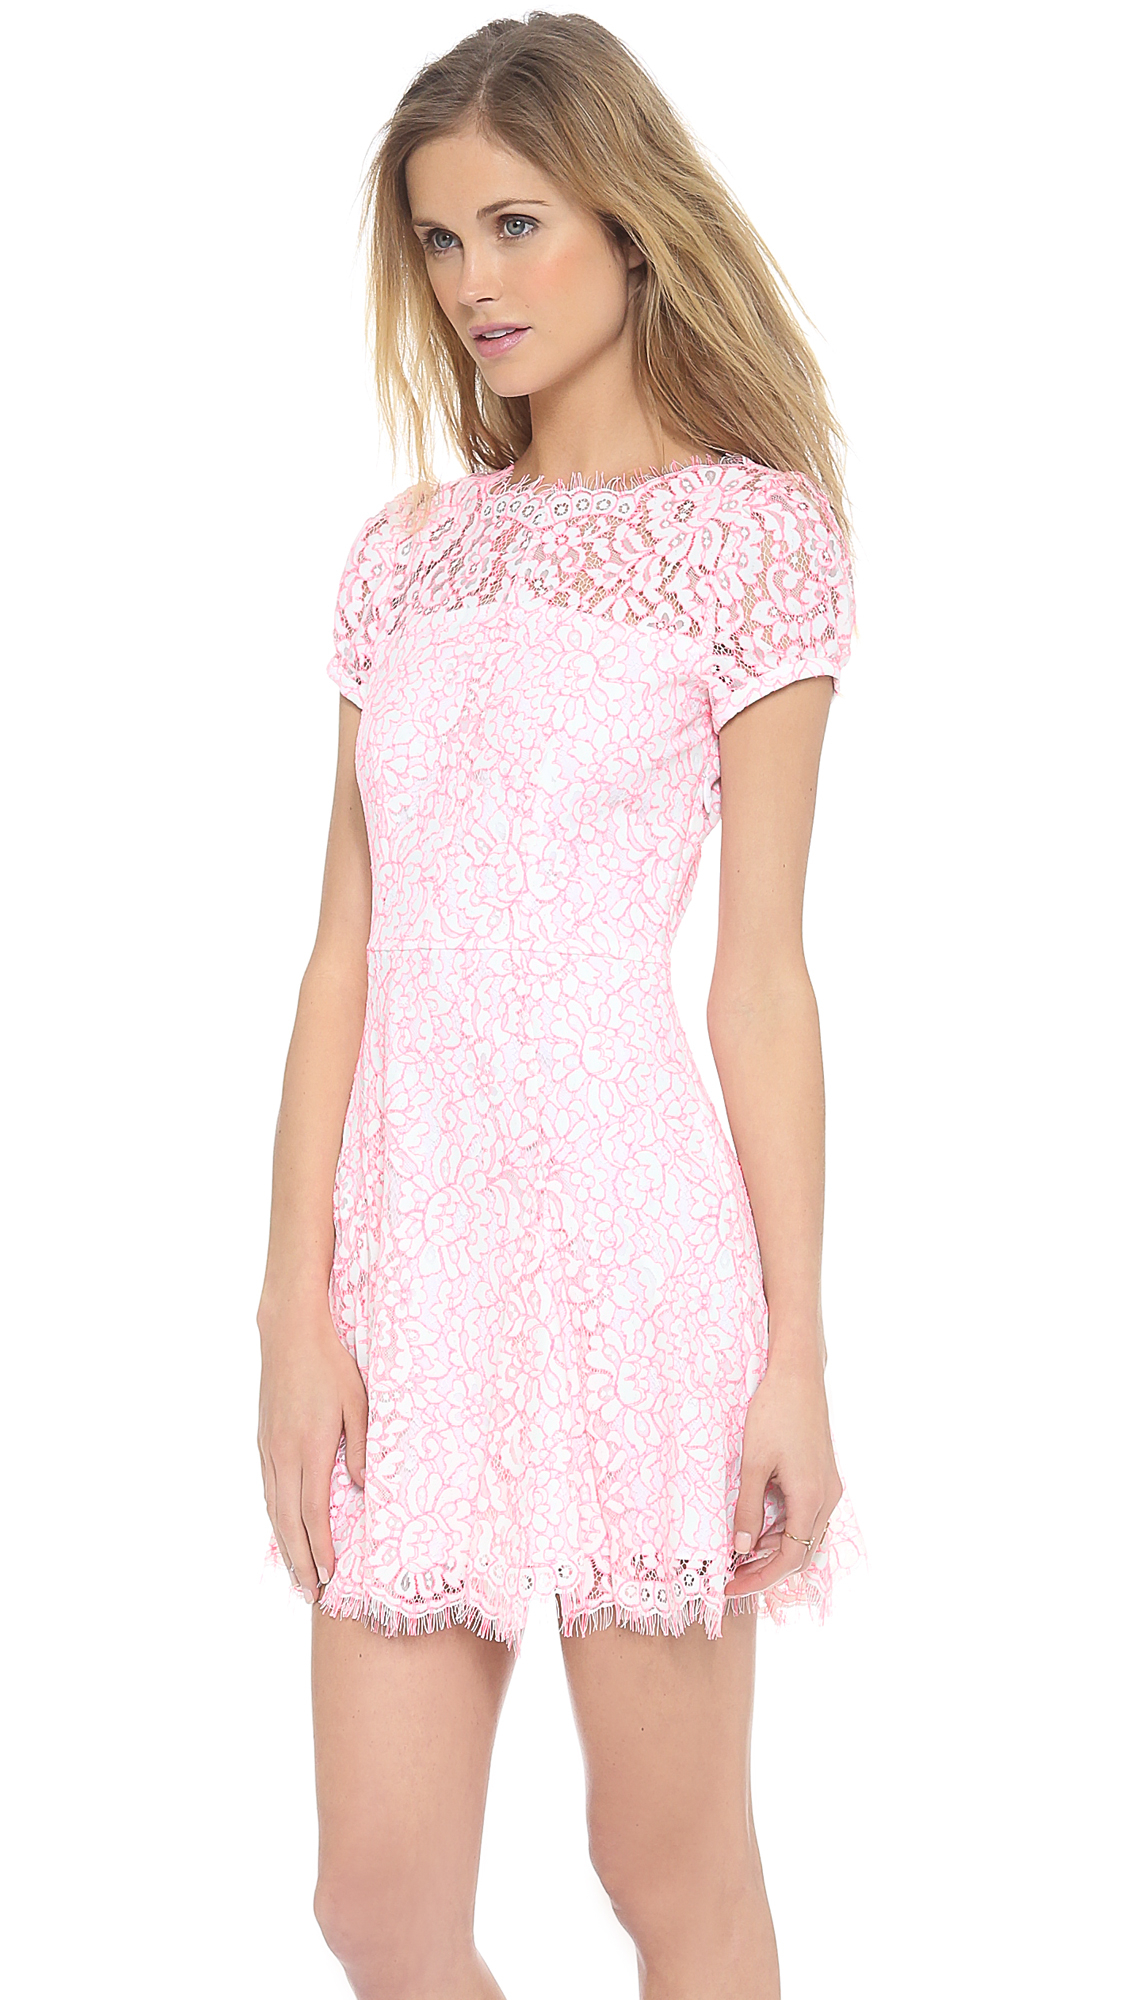 Juicy Couture Lace Dress in Pink (Menthol White/Pink)